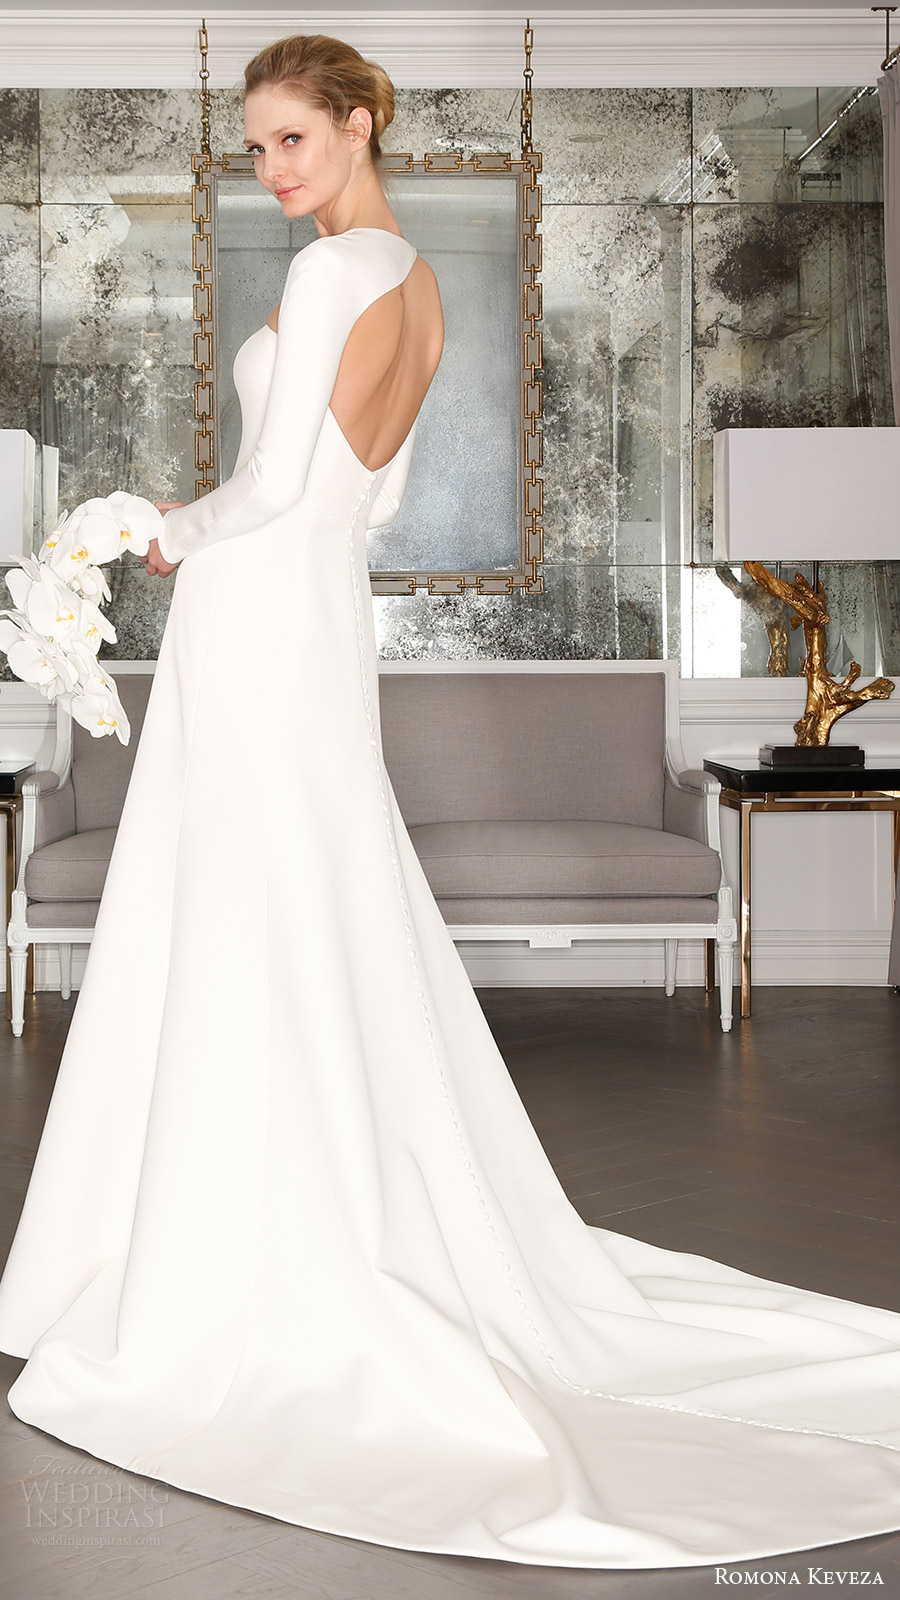 romona keveza bridal spring 2017 strapless straightacross trumpet wedding dress (rk7402) bv train optional long sleeve shrug